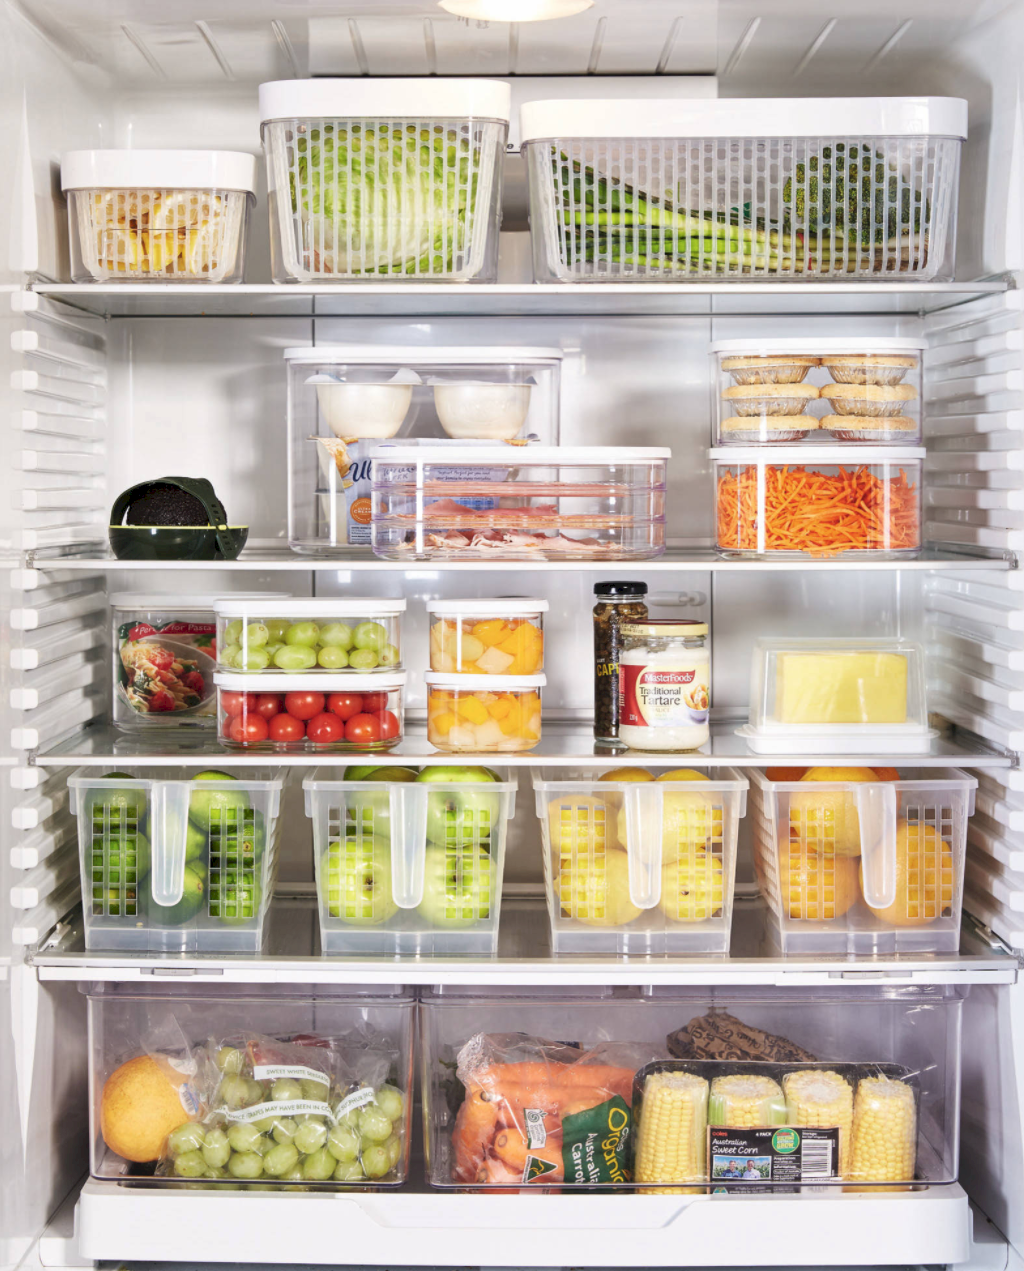 https://elonahome.com/wp-content/uploads/2018/12/Pantry-Kitchen-Organization-Ideas-for-Small-Kitchens-Part-2.png